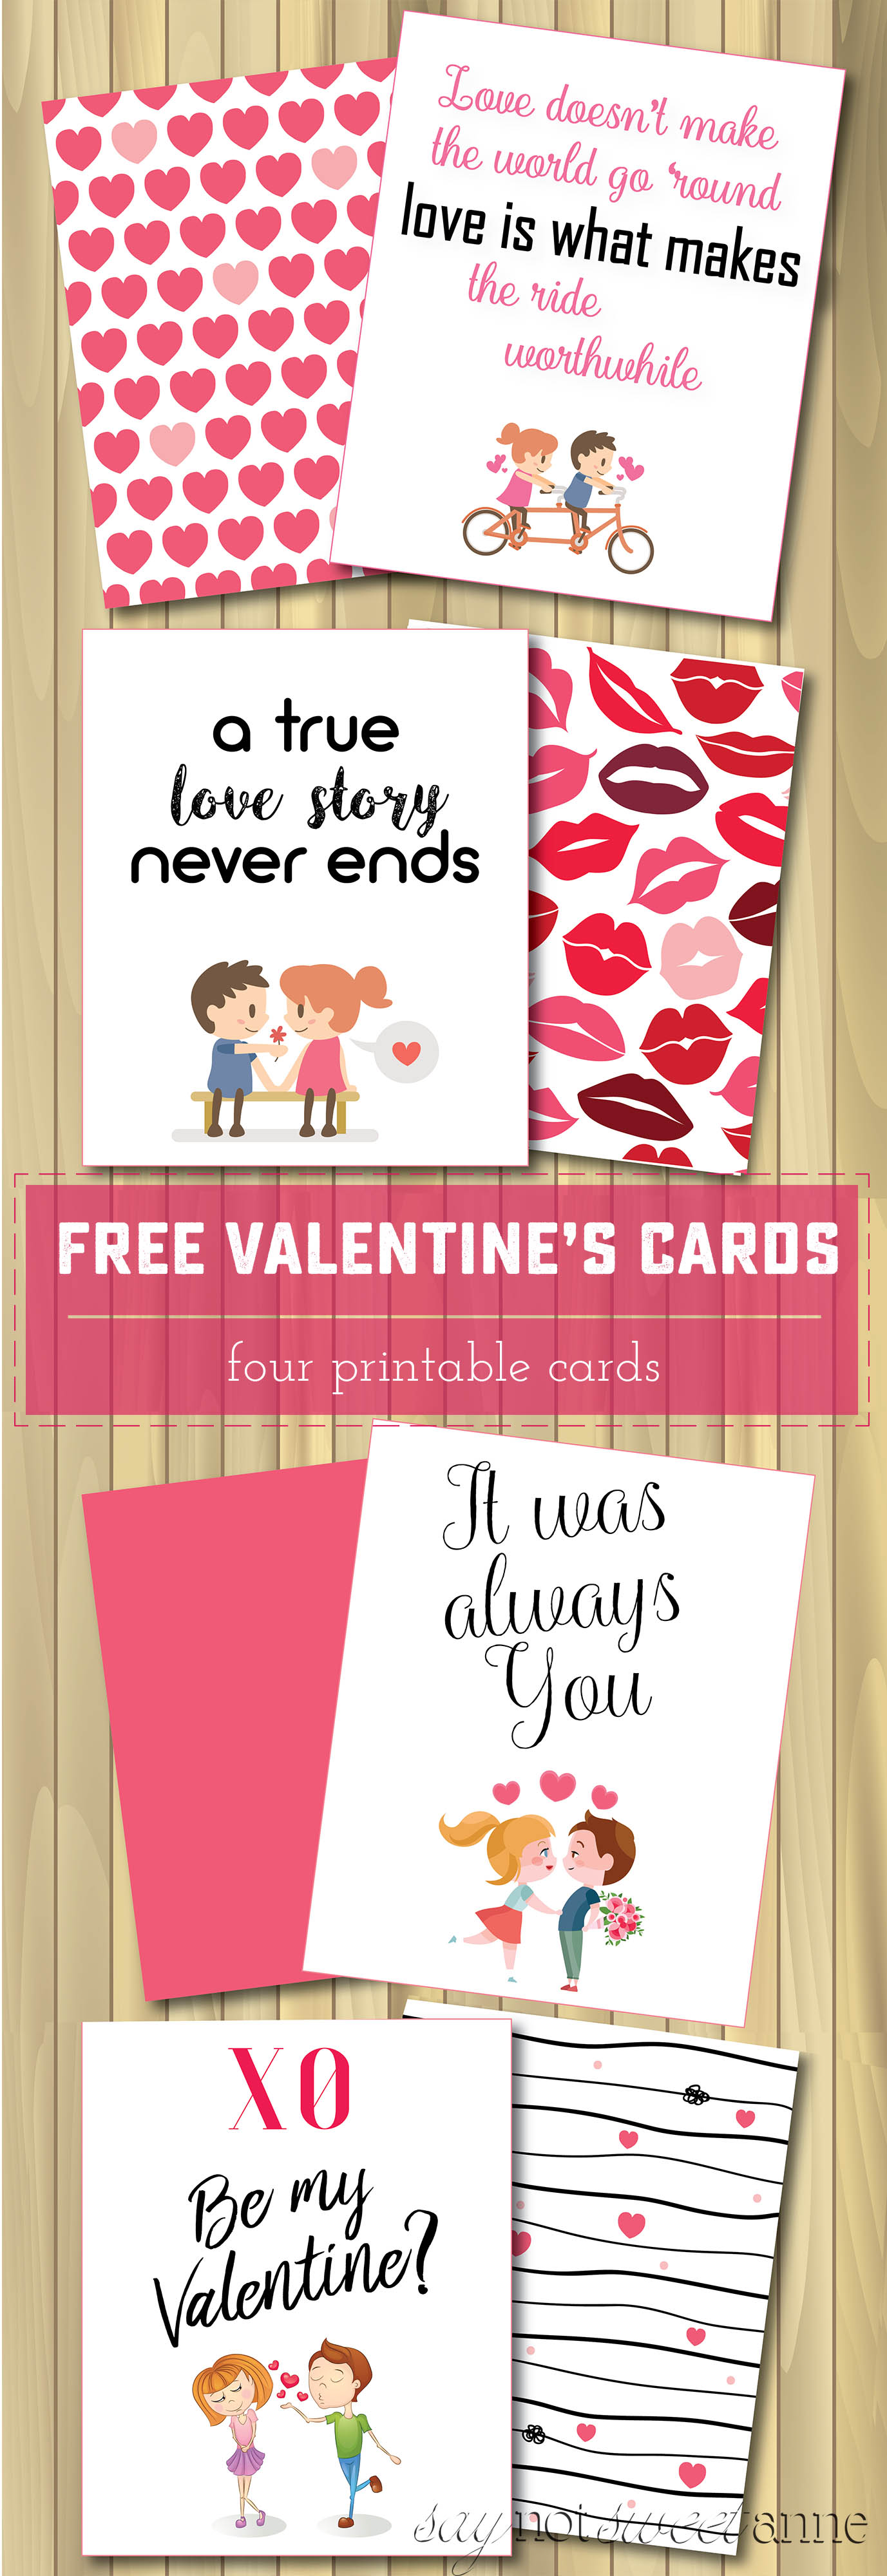 Printable Valentines Day Cards Sweet Anne Designs – Great Valentine Cards